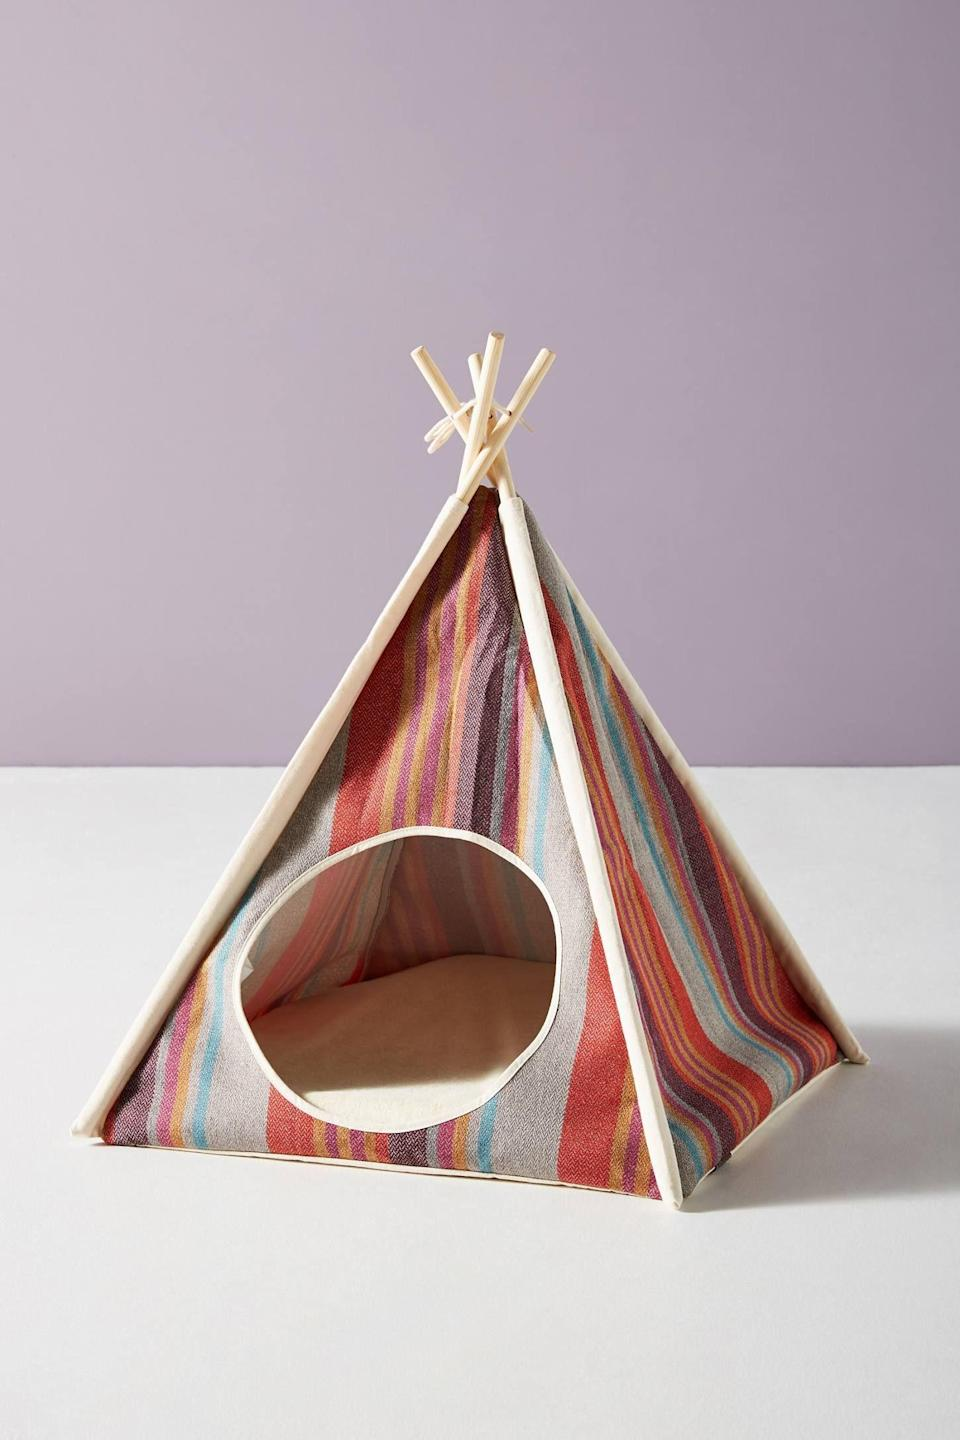 """<h3><strong>Cozy Pet Tent</strong></h3><p>Made from a pine-wood frame and covered in a chic-striped canvas, this cozy tent is read house cat to petite pup-naps with serious charm.</p><br><br><strong>Anthropologie</strong> Pet Play Tent, $88, available at <a href=""""https://www.anthropologie.com/shop/pet-play-tent?category=SEARCHRESULTS&color=060"""" rel=""""nofollow noopener"""" target=""""_blank"""" data-ylk=""""slk:Anthropologie"""" class=""""link rapid-noclick-resp"""">Anthropologie</a>"""